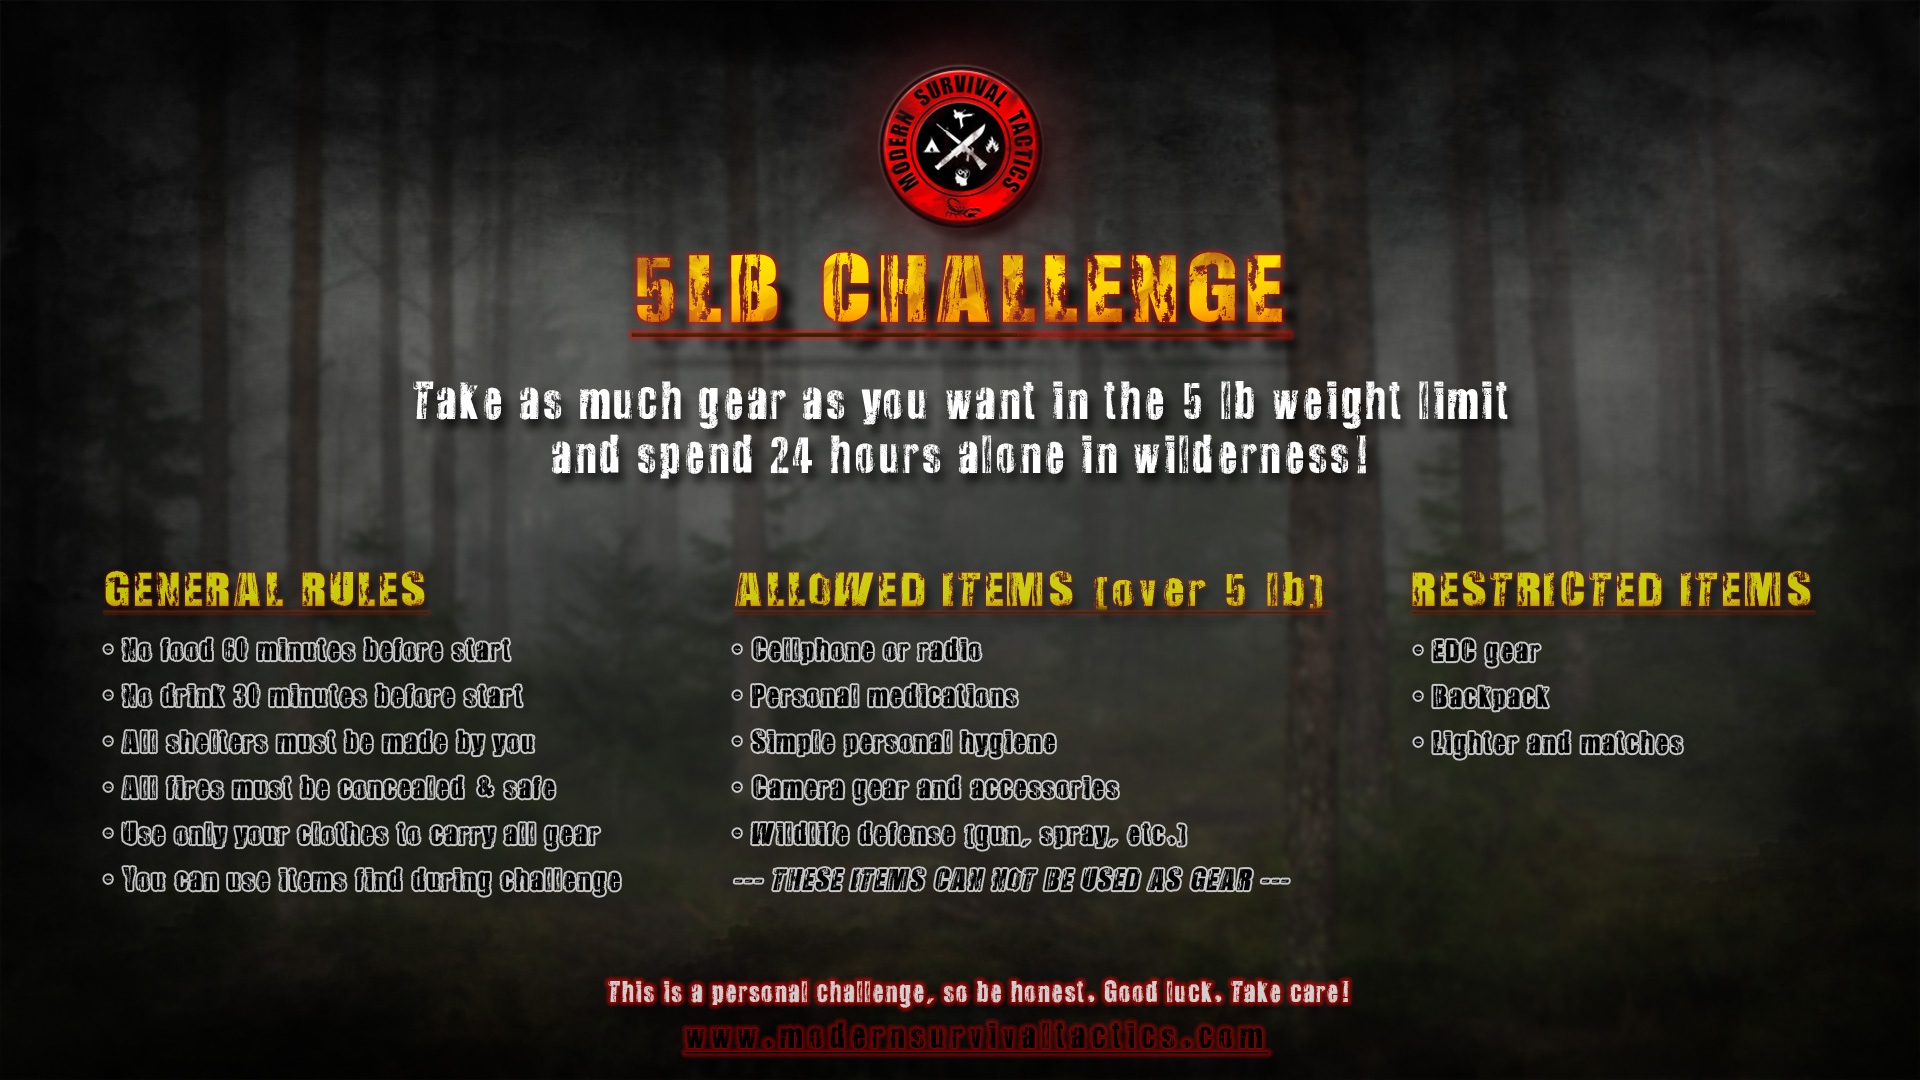 5lb Challenge Rules